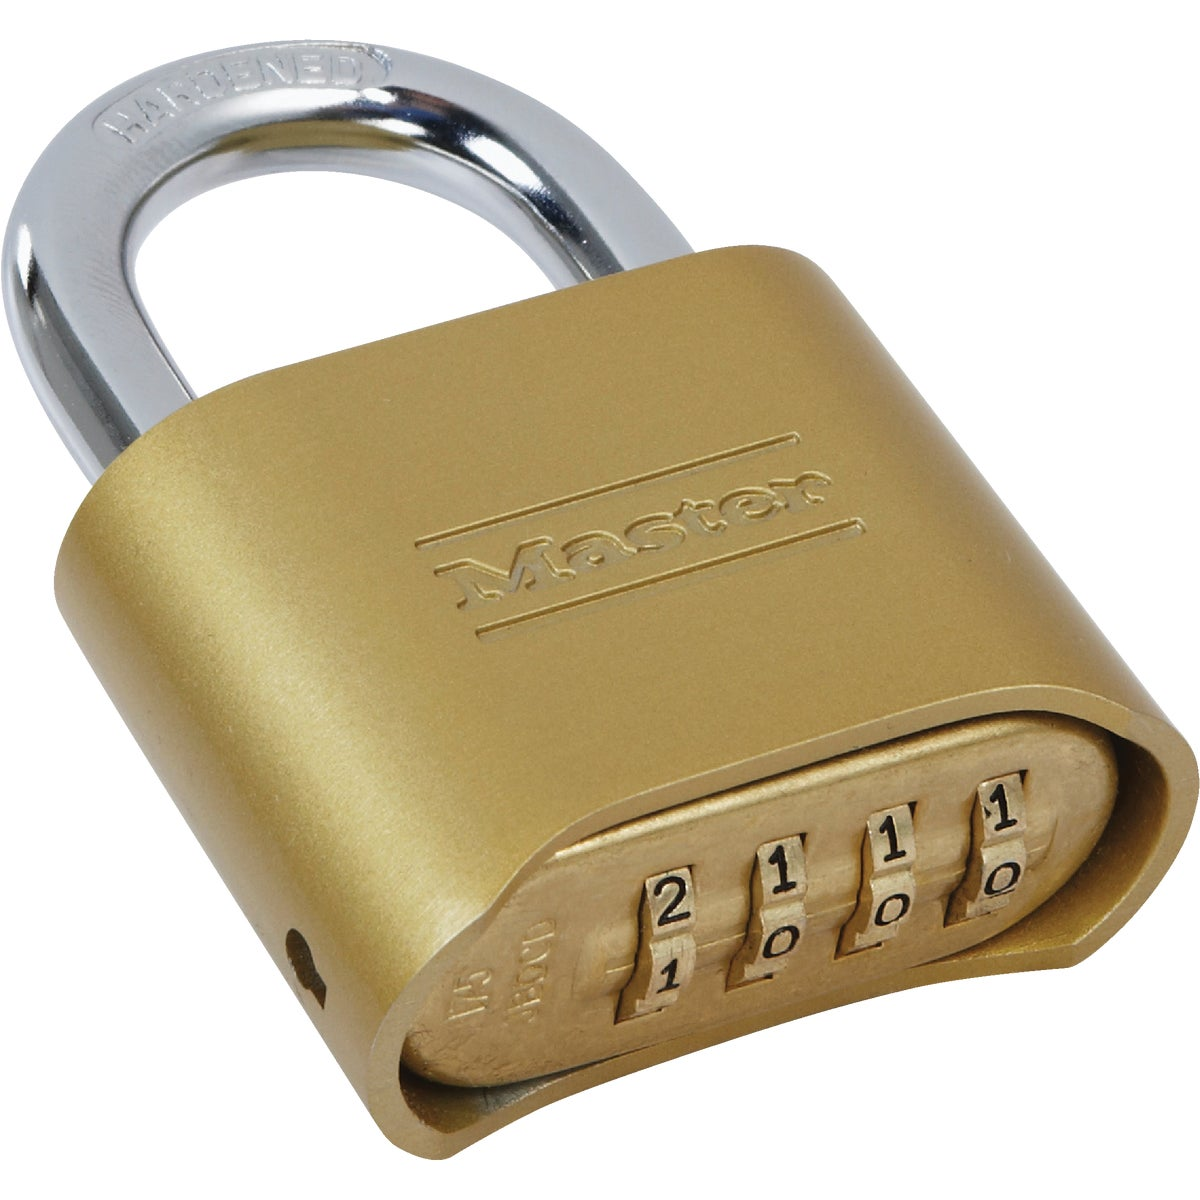 RESET COMBINATION LOCK